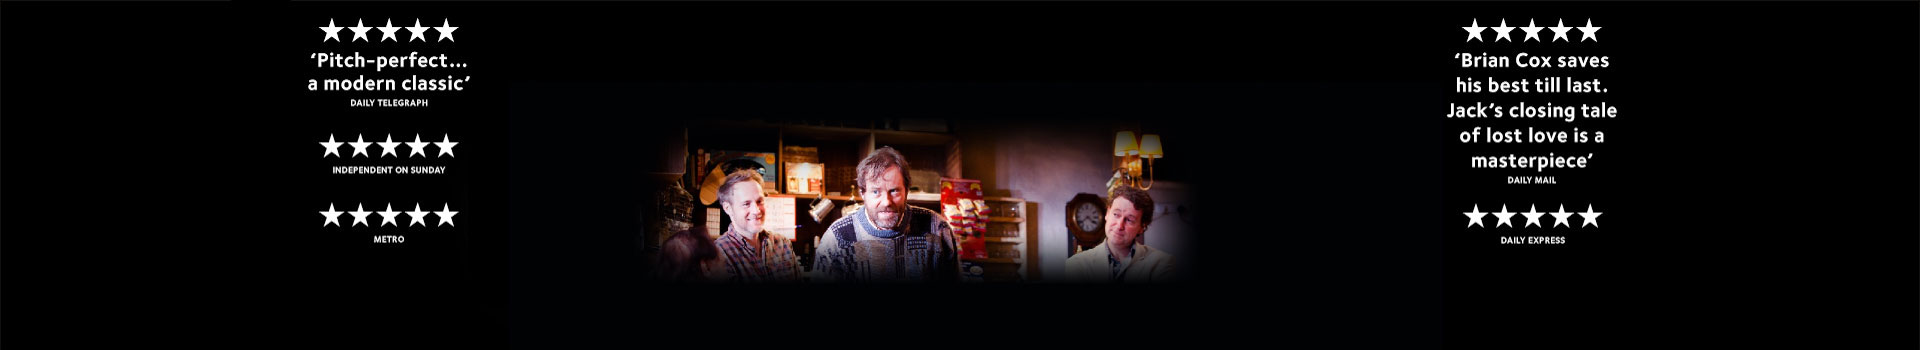 The Weir banner image